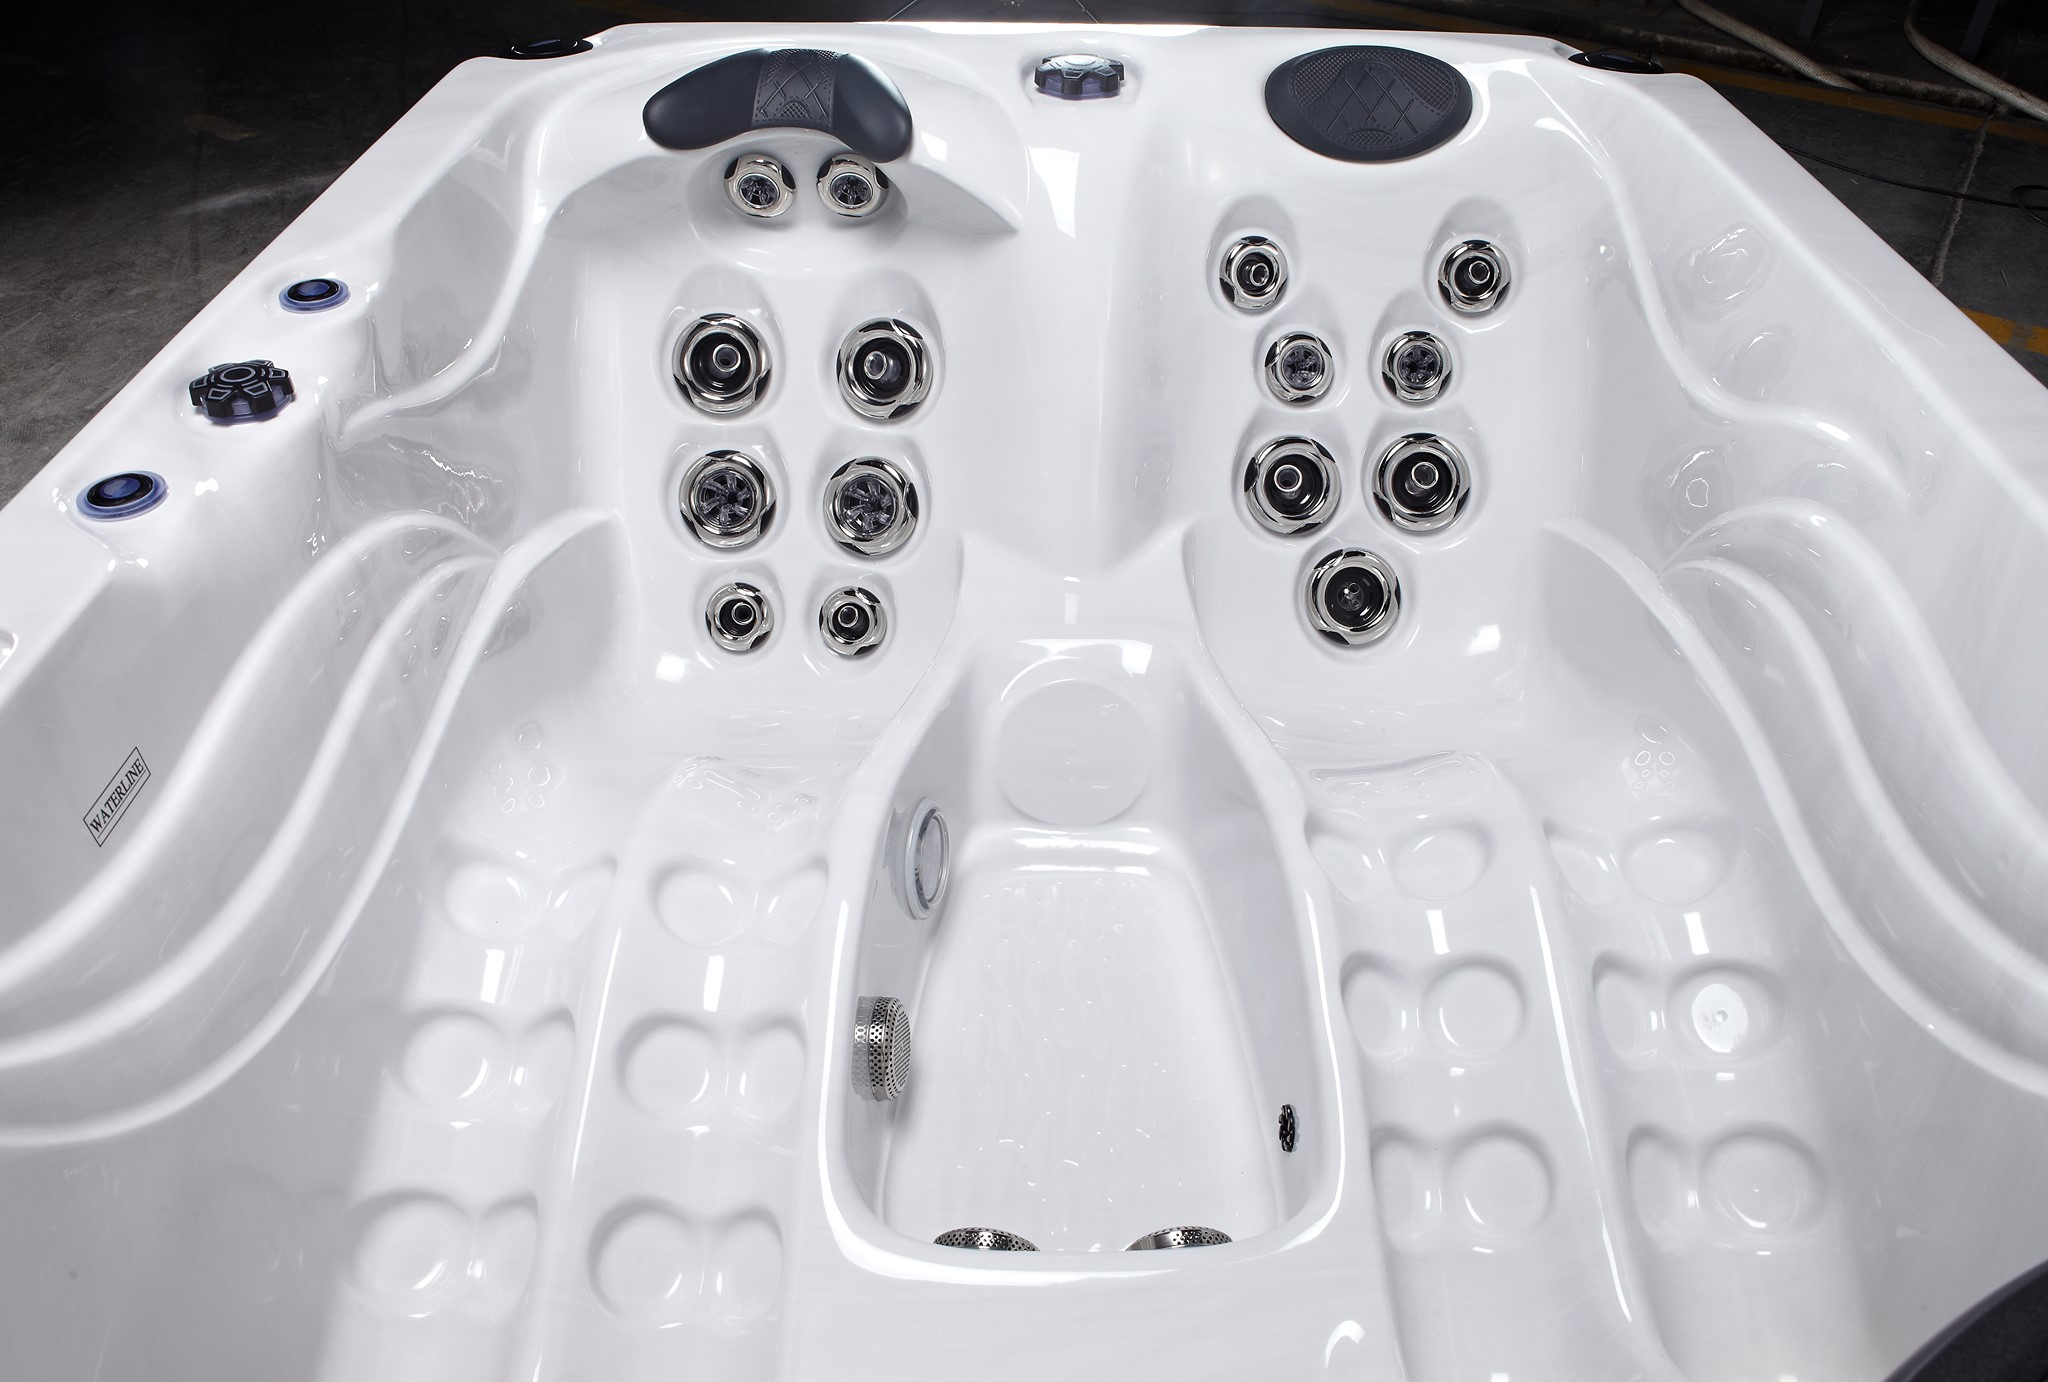 Cosy up in Favells Titus Plug&Play hot tub for an intimate evening of relaxation.  This hot tub is designed for up to 3 people with 1 sitting + 2 loungers. The Titus Plug&Play includes 23 jets, water features and LED lights.  www.Fa » Spas, Swim Spas & Accessories Fuengirola, Costa Del Sol, Spain